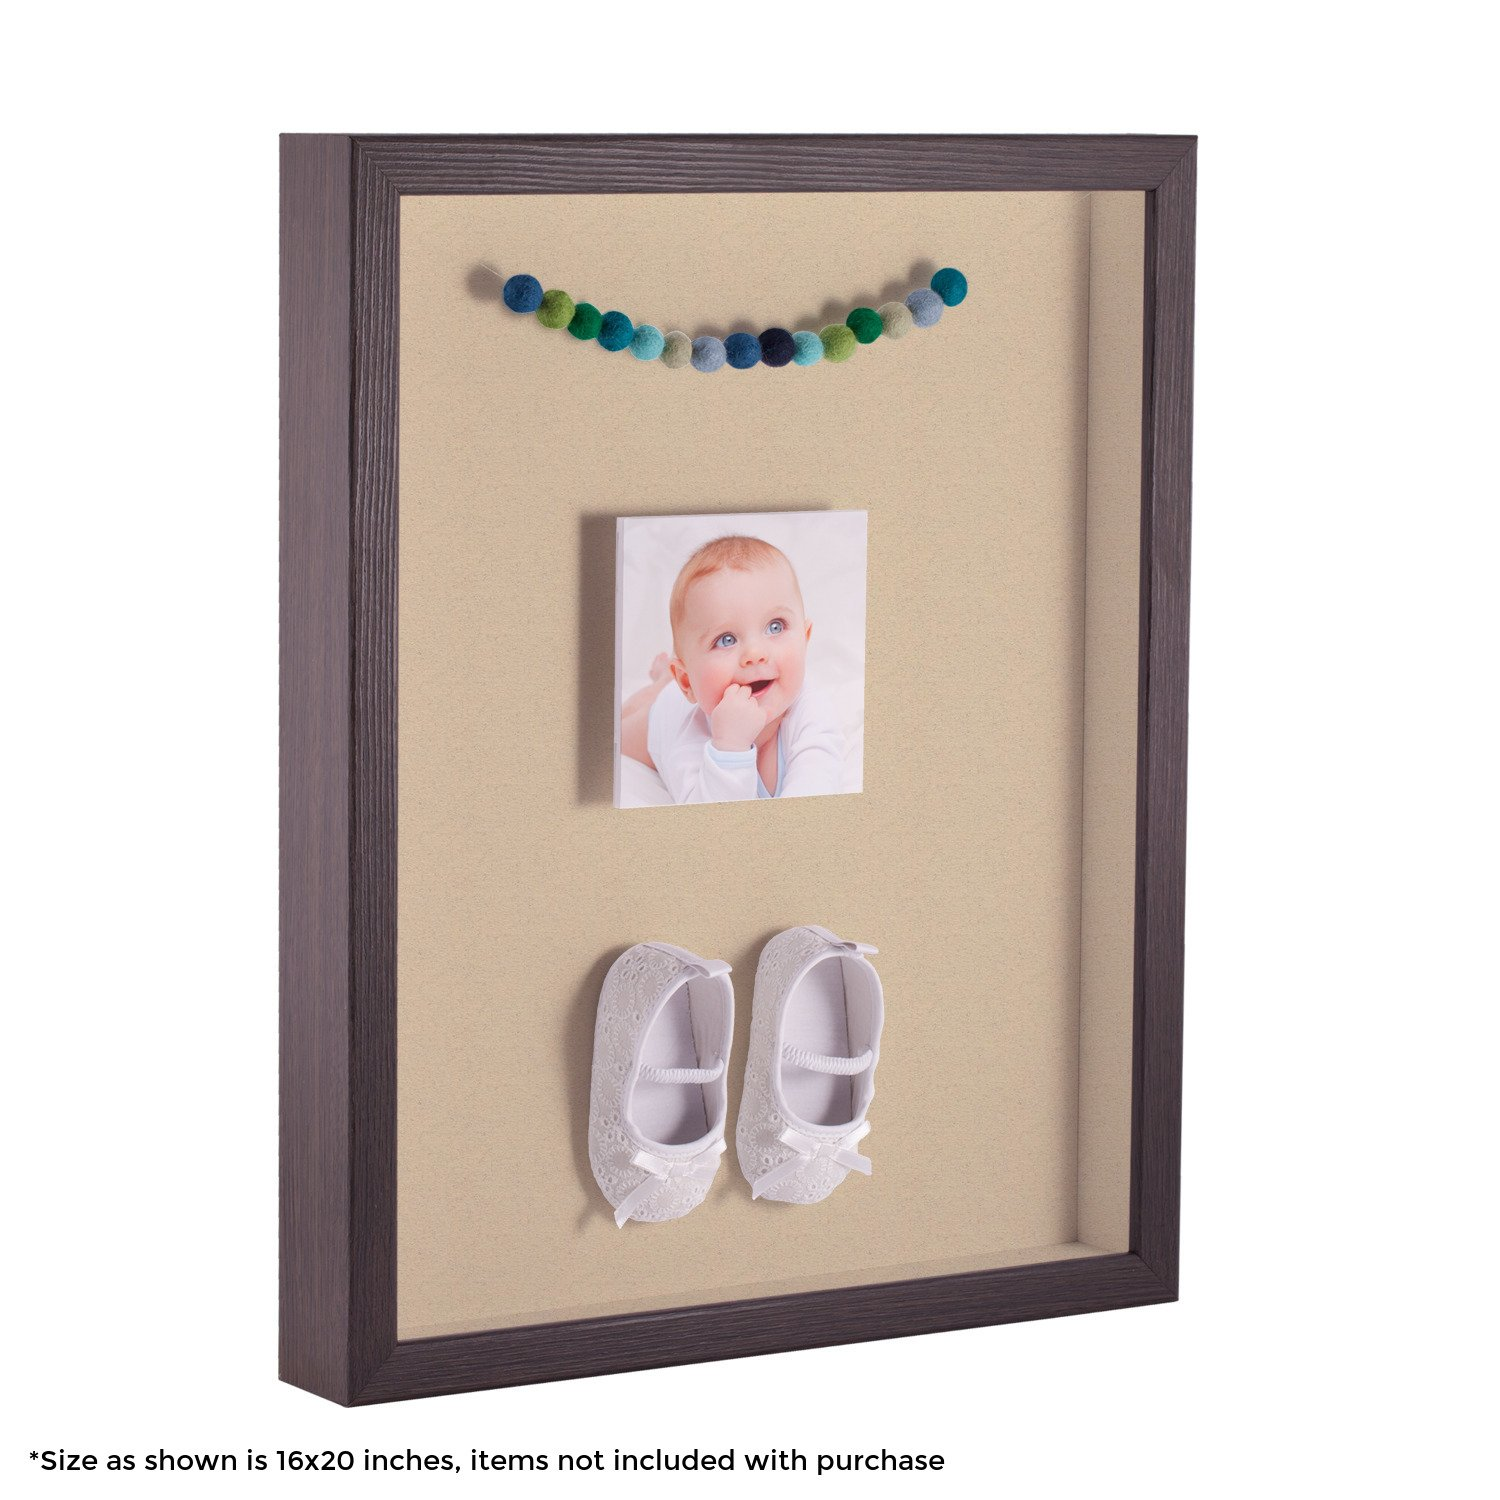 ArtToFrames 12 x 18 Inch Shadow Box Picture Frame, with a Melinga Oak Gray 1'' Shadowbox Frame and Seaside Mat